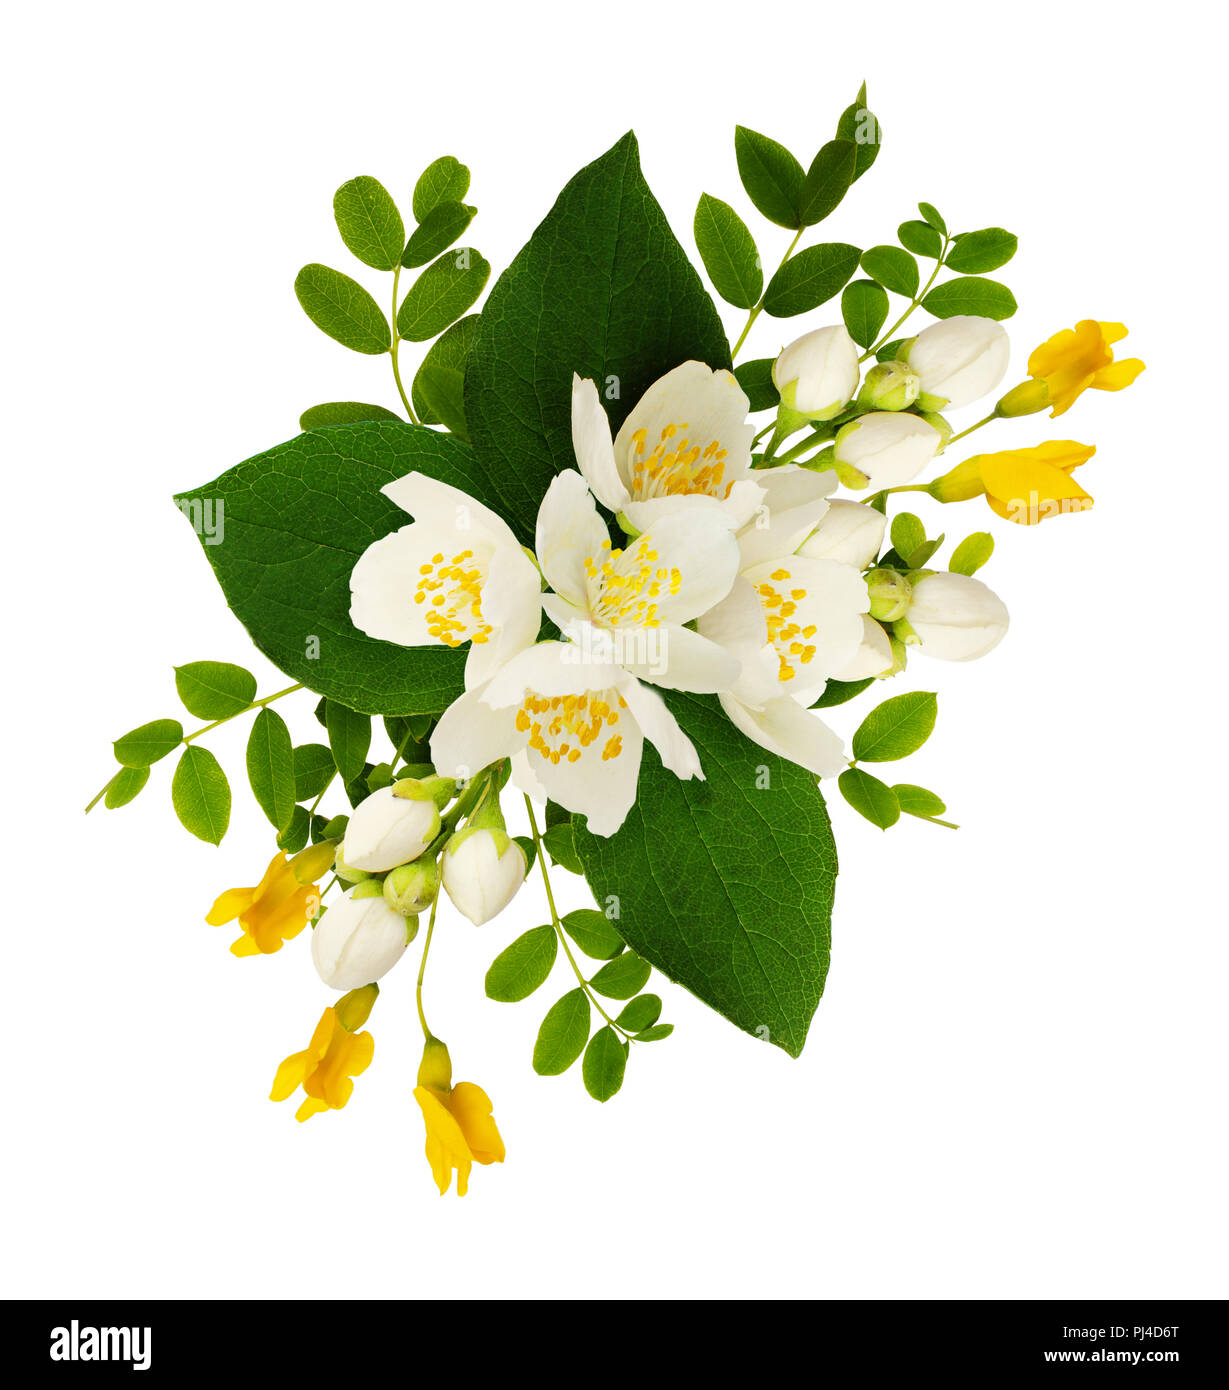 Jasmine and acacia flowers and leaves in floral arrangement isolated jasmine and acacia flowers and leaves in floral arrangement isolated on white izmirmasajfo